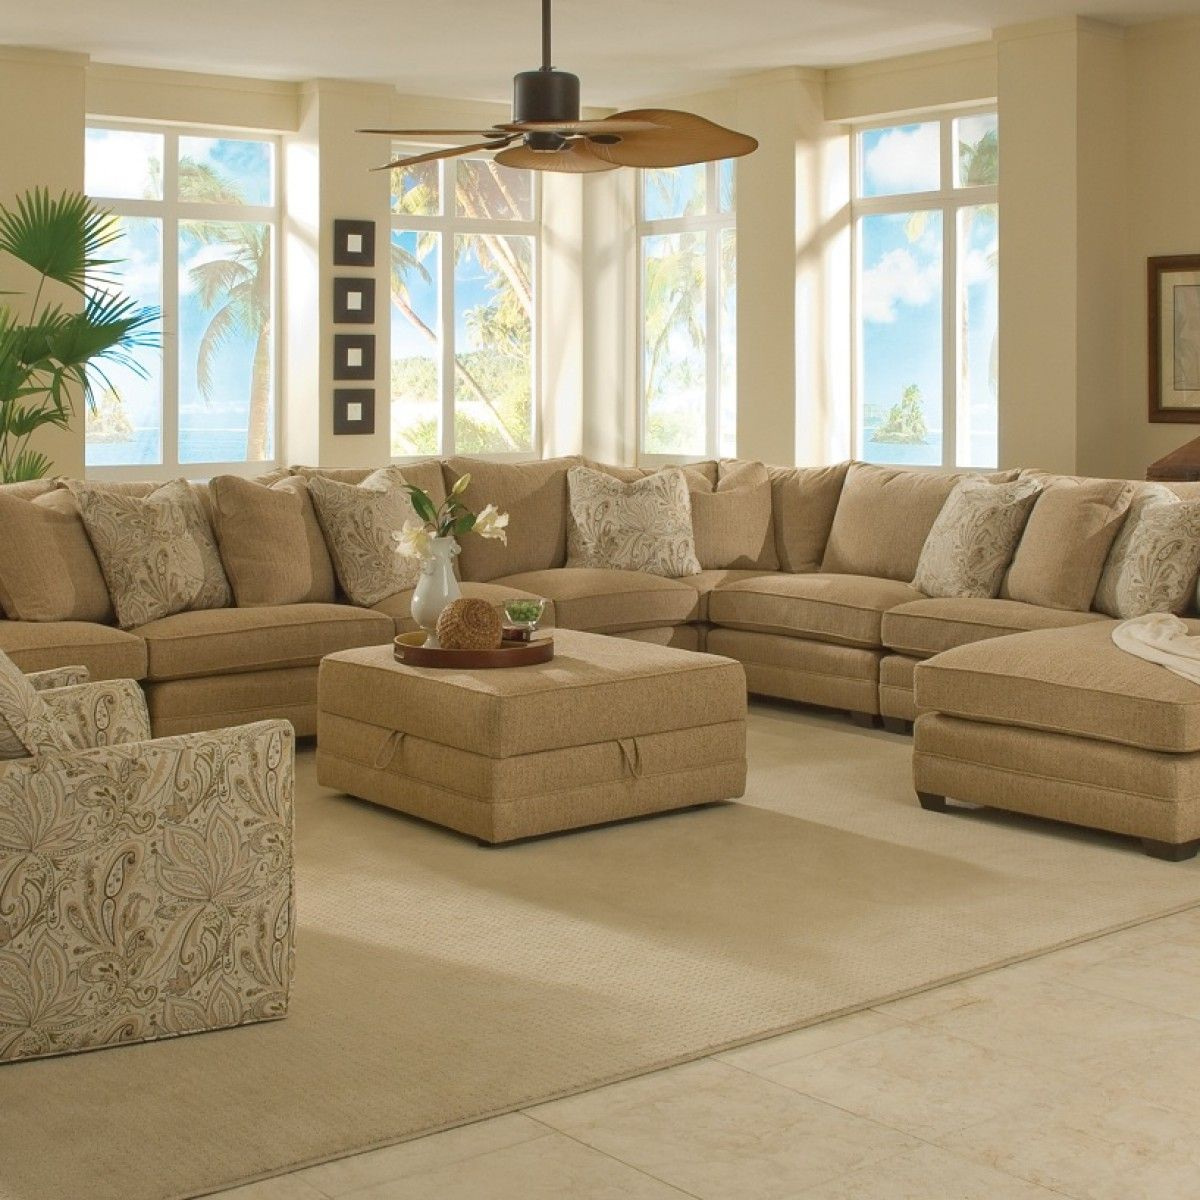 Magnificent large sectional sofas family room for Sofa ideas for family rooms